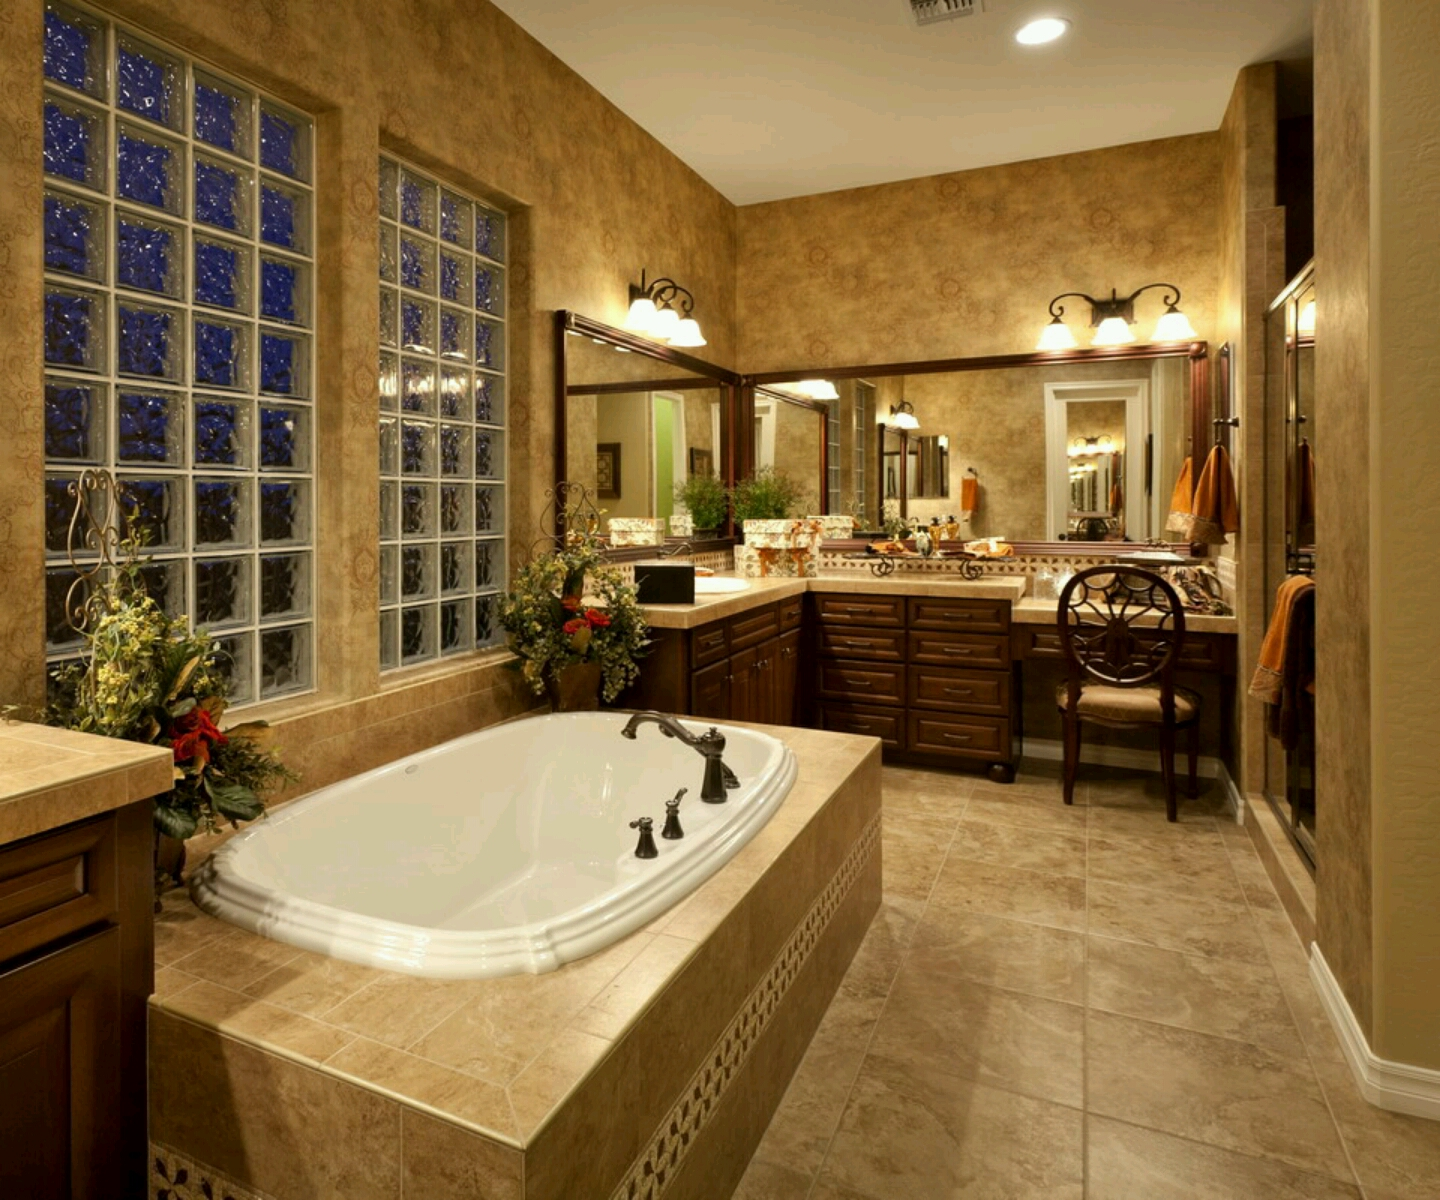 Luxury modern bathrooms designs ideas furniture gallery for Luxury master bath designs